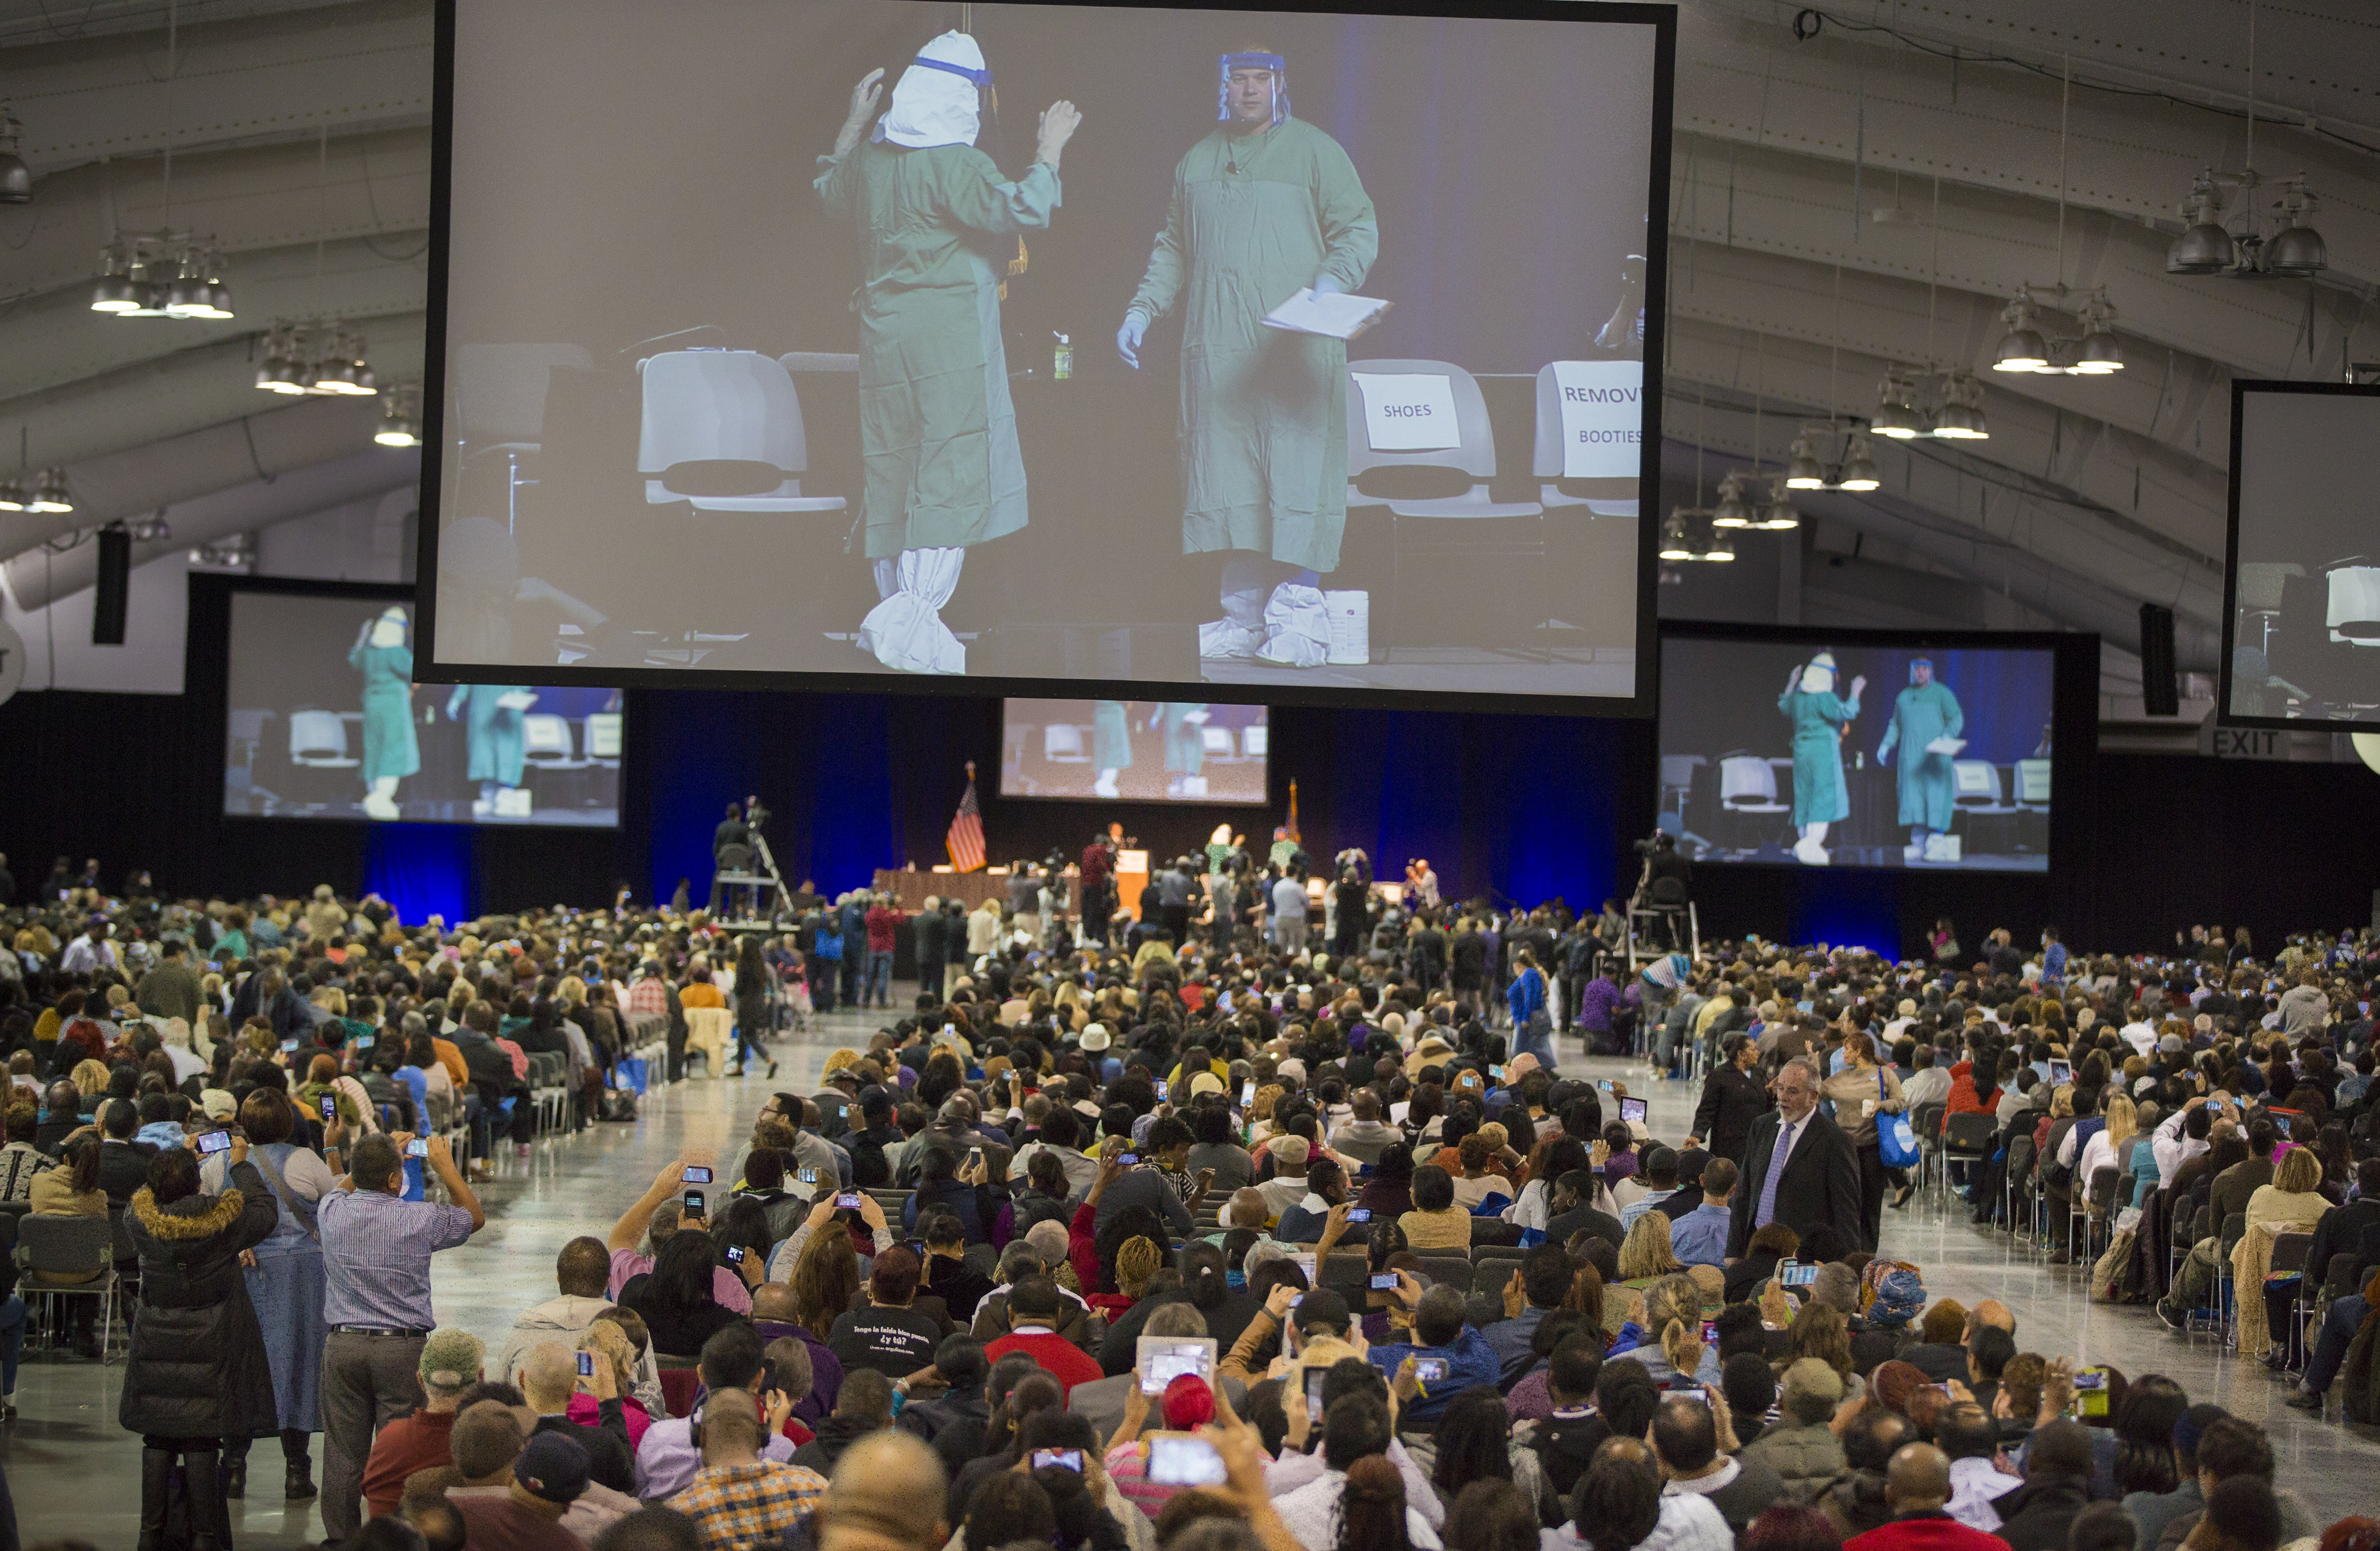 Officials on large screen demonstrate the proper way to don personal protective gear at an Ebola training session for thousands of health care workers in New York on Tuesday.